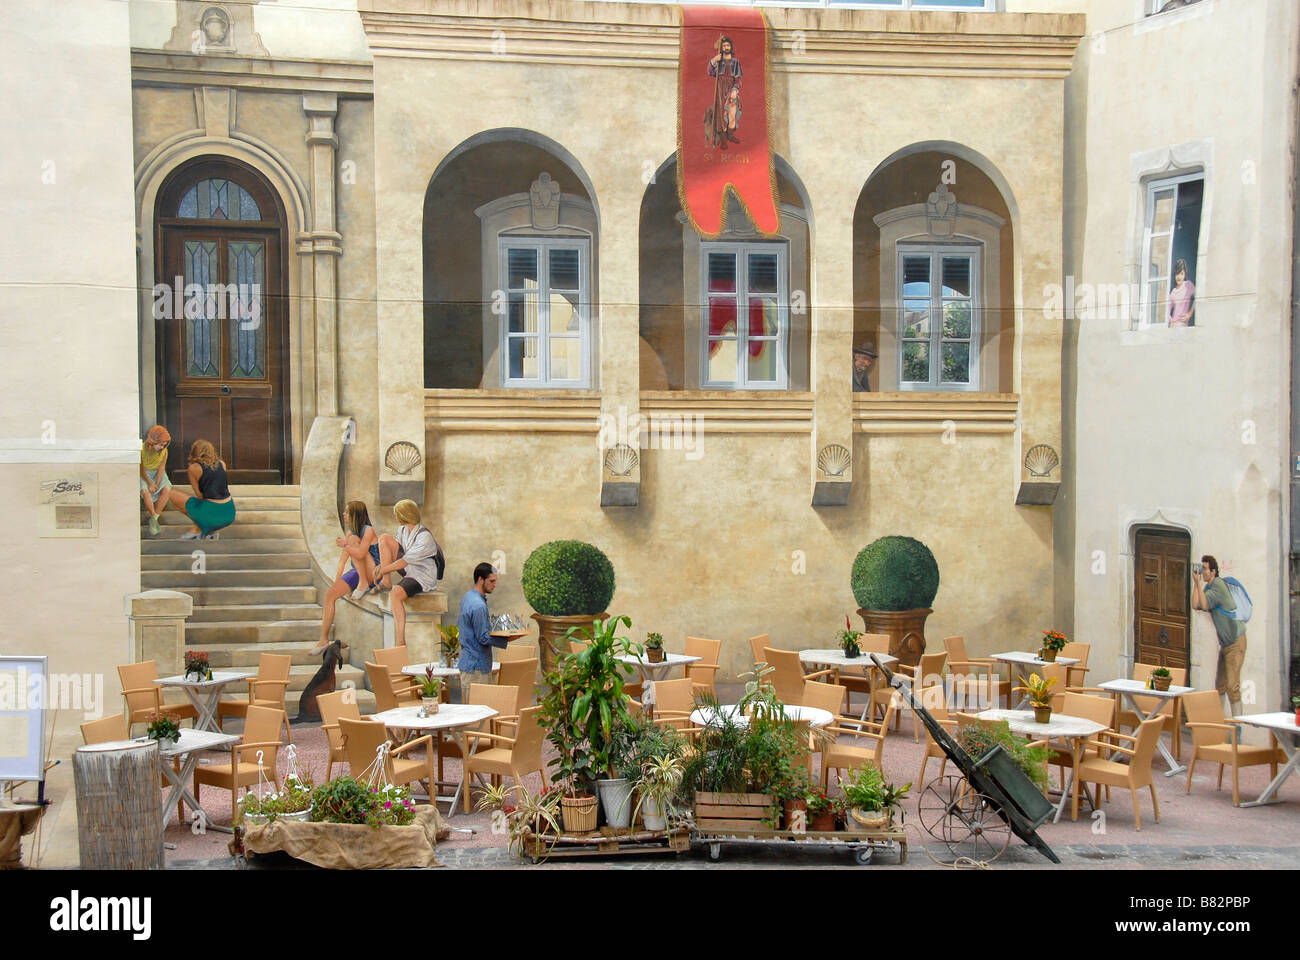 waiter in a restaurant terrace photorealistic painting on the stock photo waiter in a restaurant terrace photorealistic painting on the house wall montpellier france europe